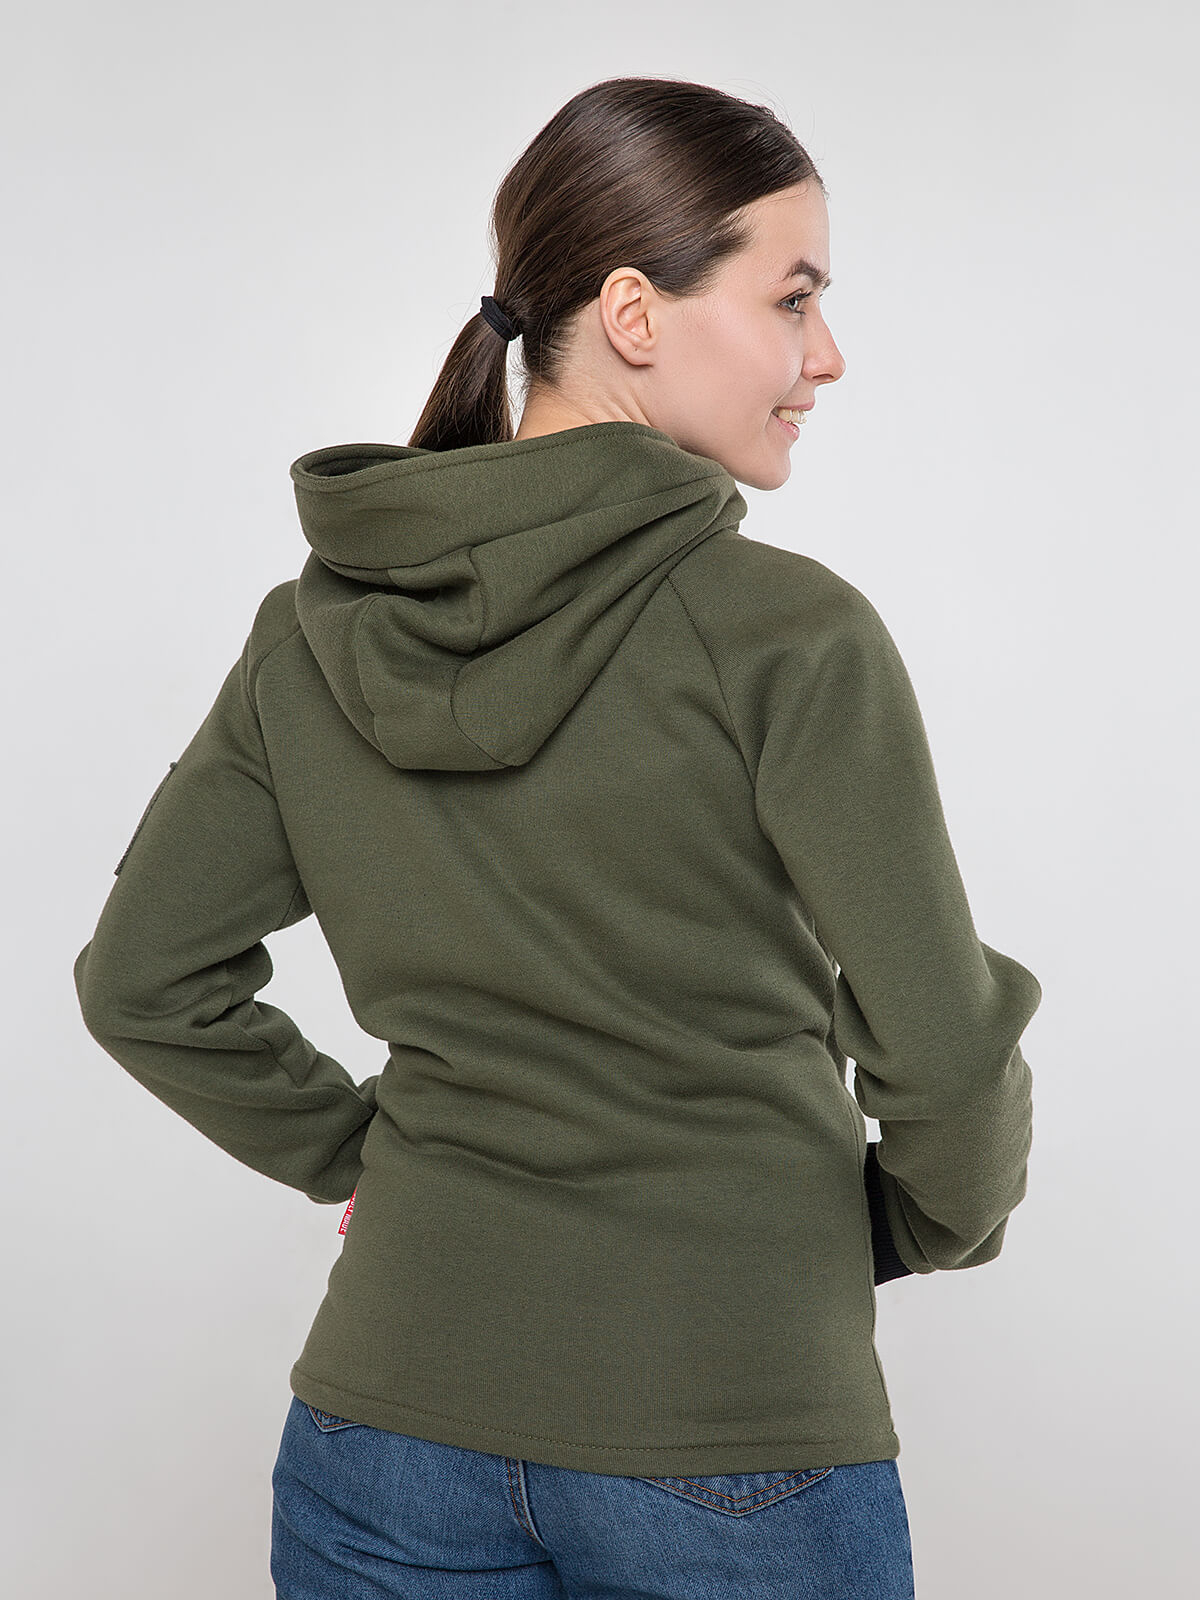 Women's Hoodie Ukrainian Air Force. Color khaki.  Don`t worry about the universal size.